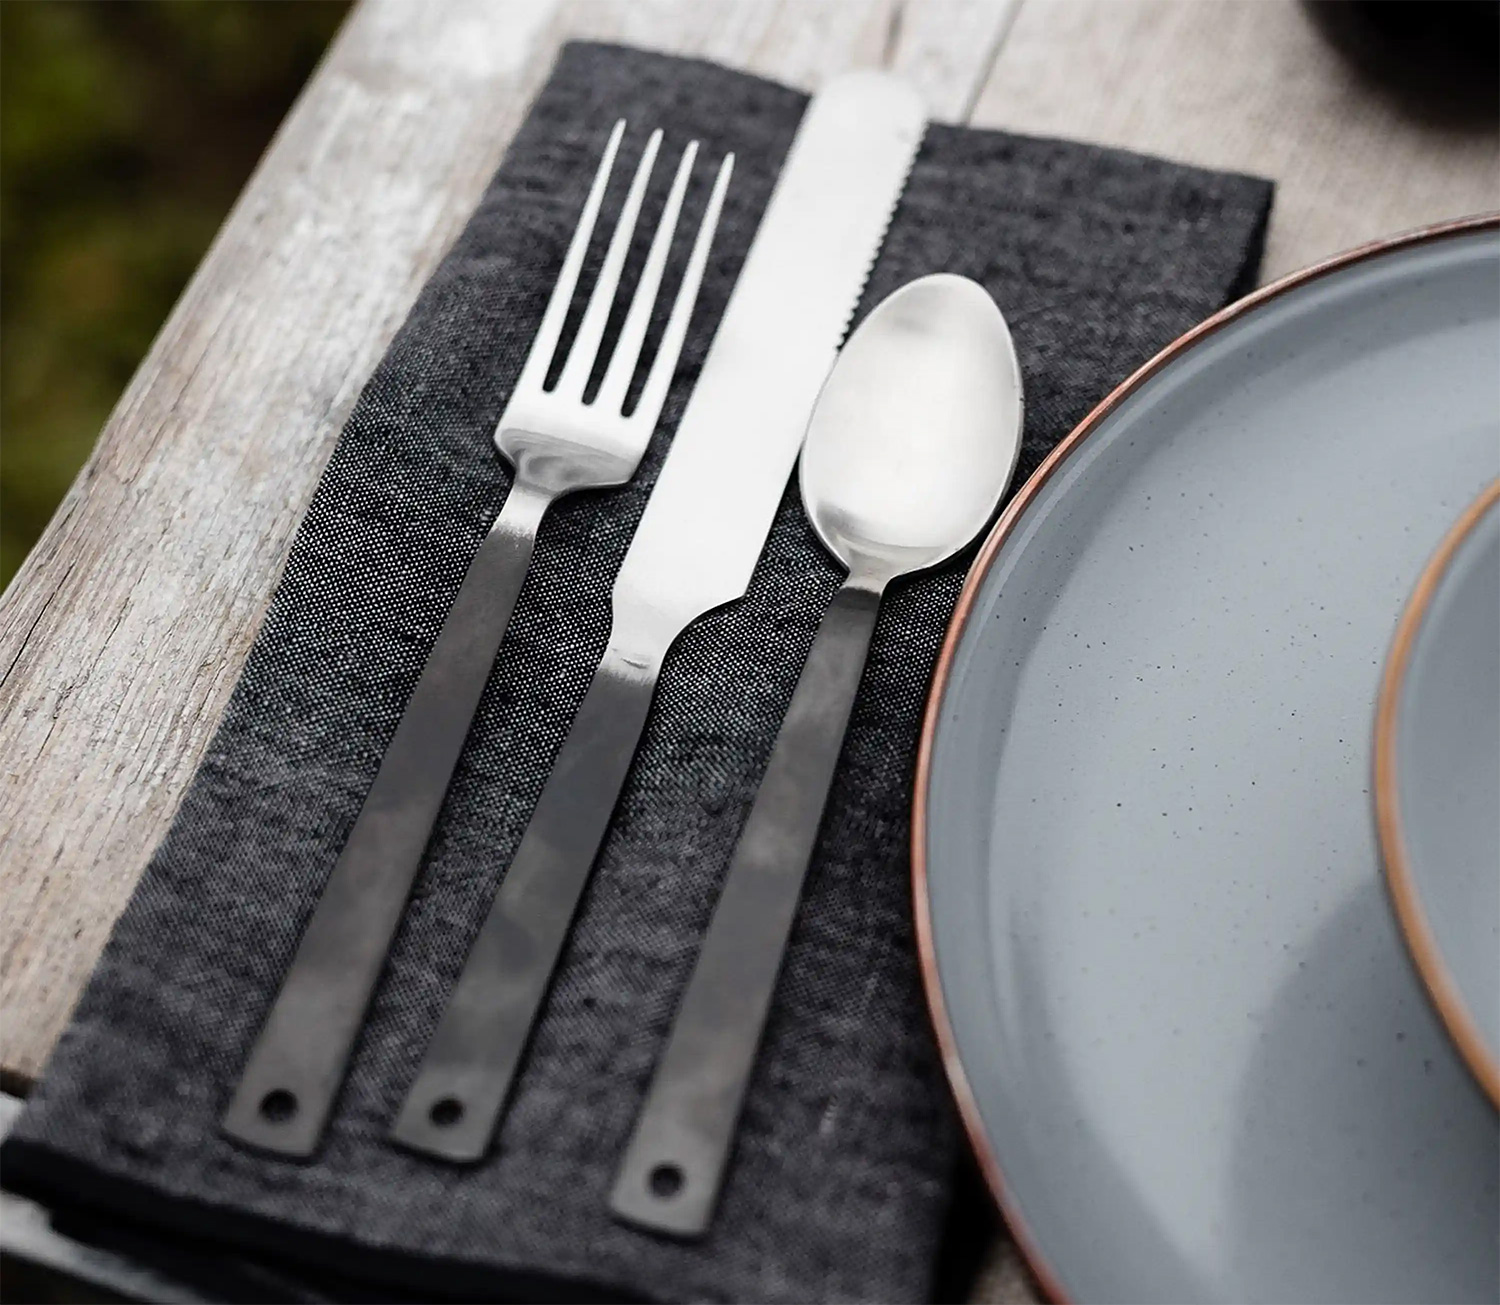 Eat Right At Home Or Away with Barebones' Flatware Set at werd.com